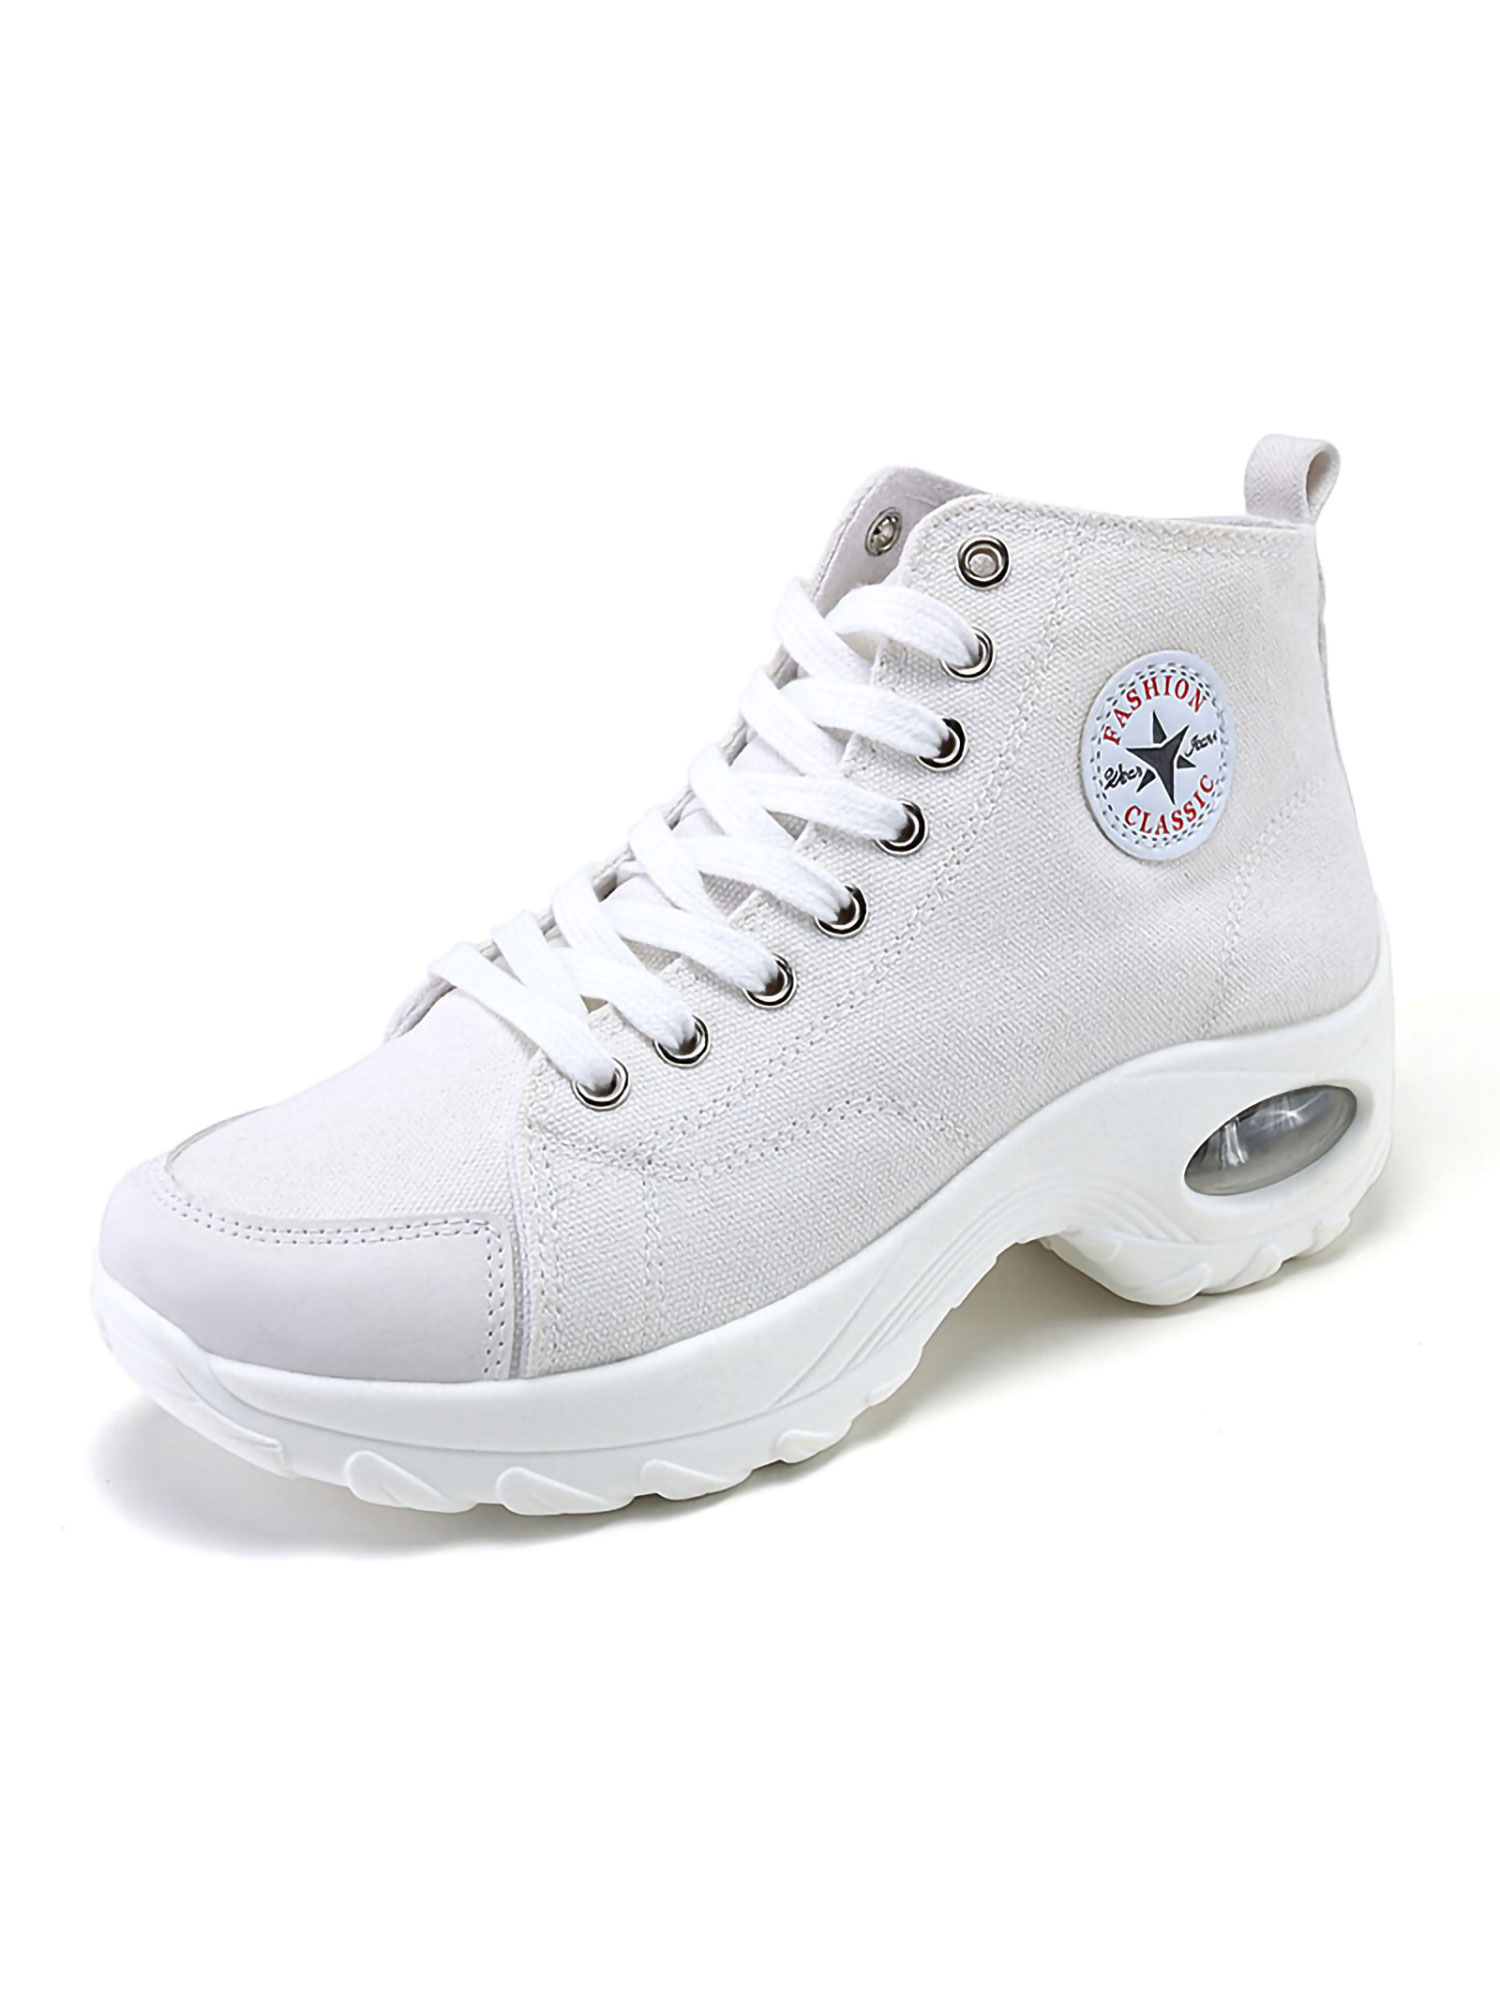 Boys High Top Trainers Boys Hi Tops High Tops Sneakers Boots Shoes Size